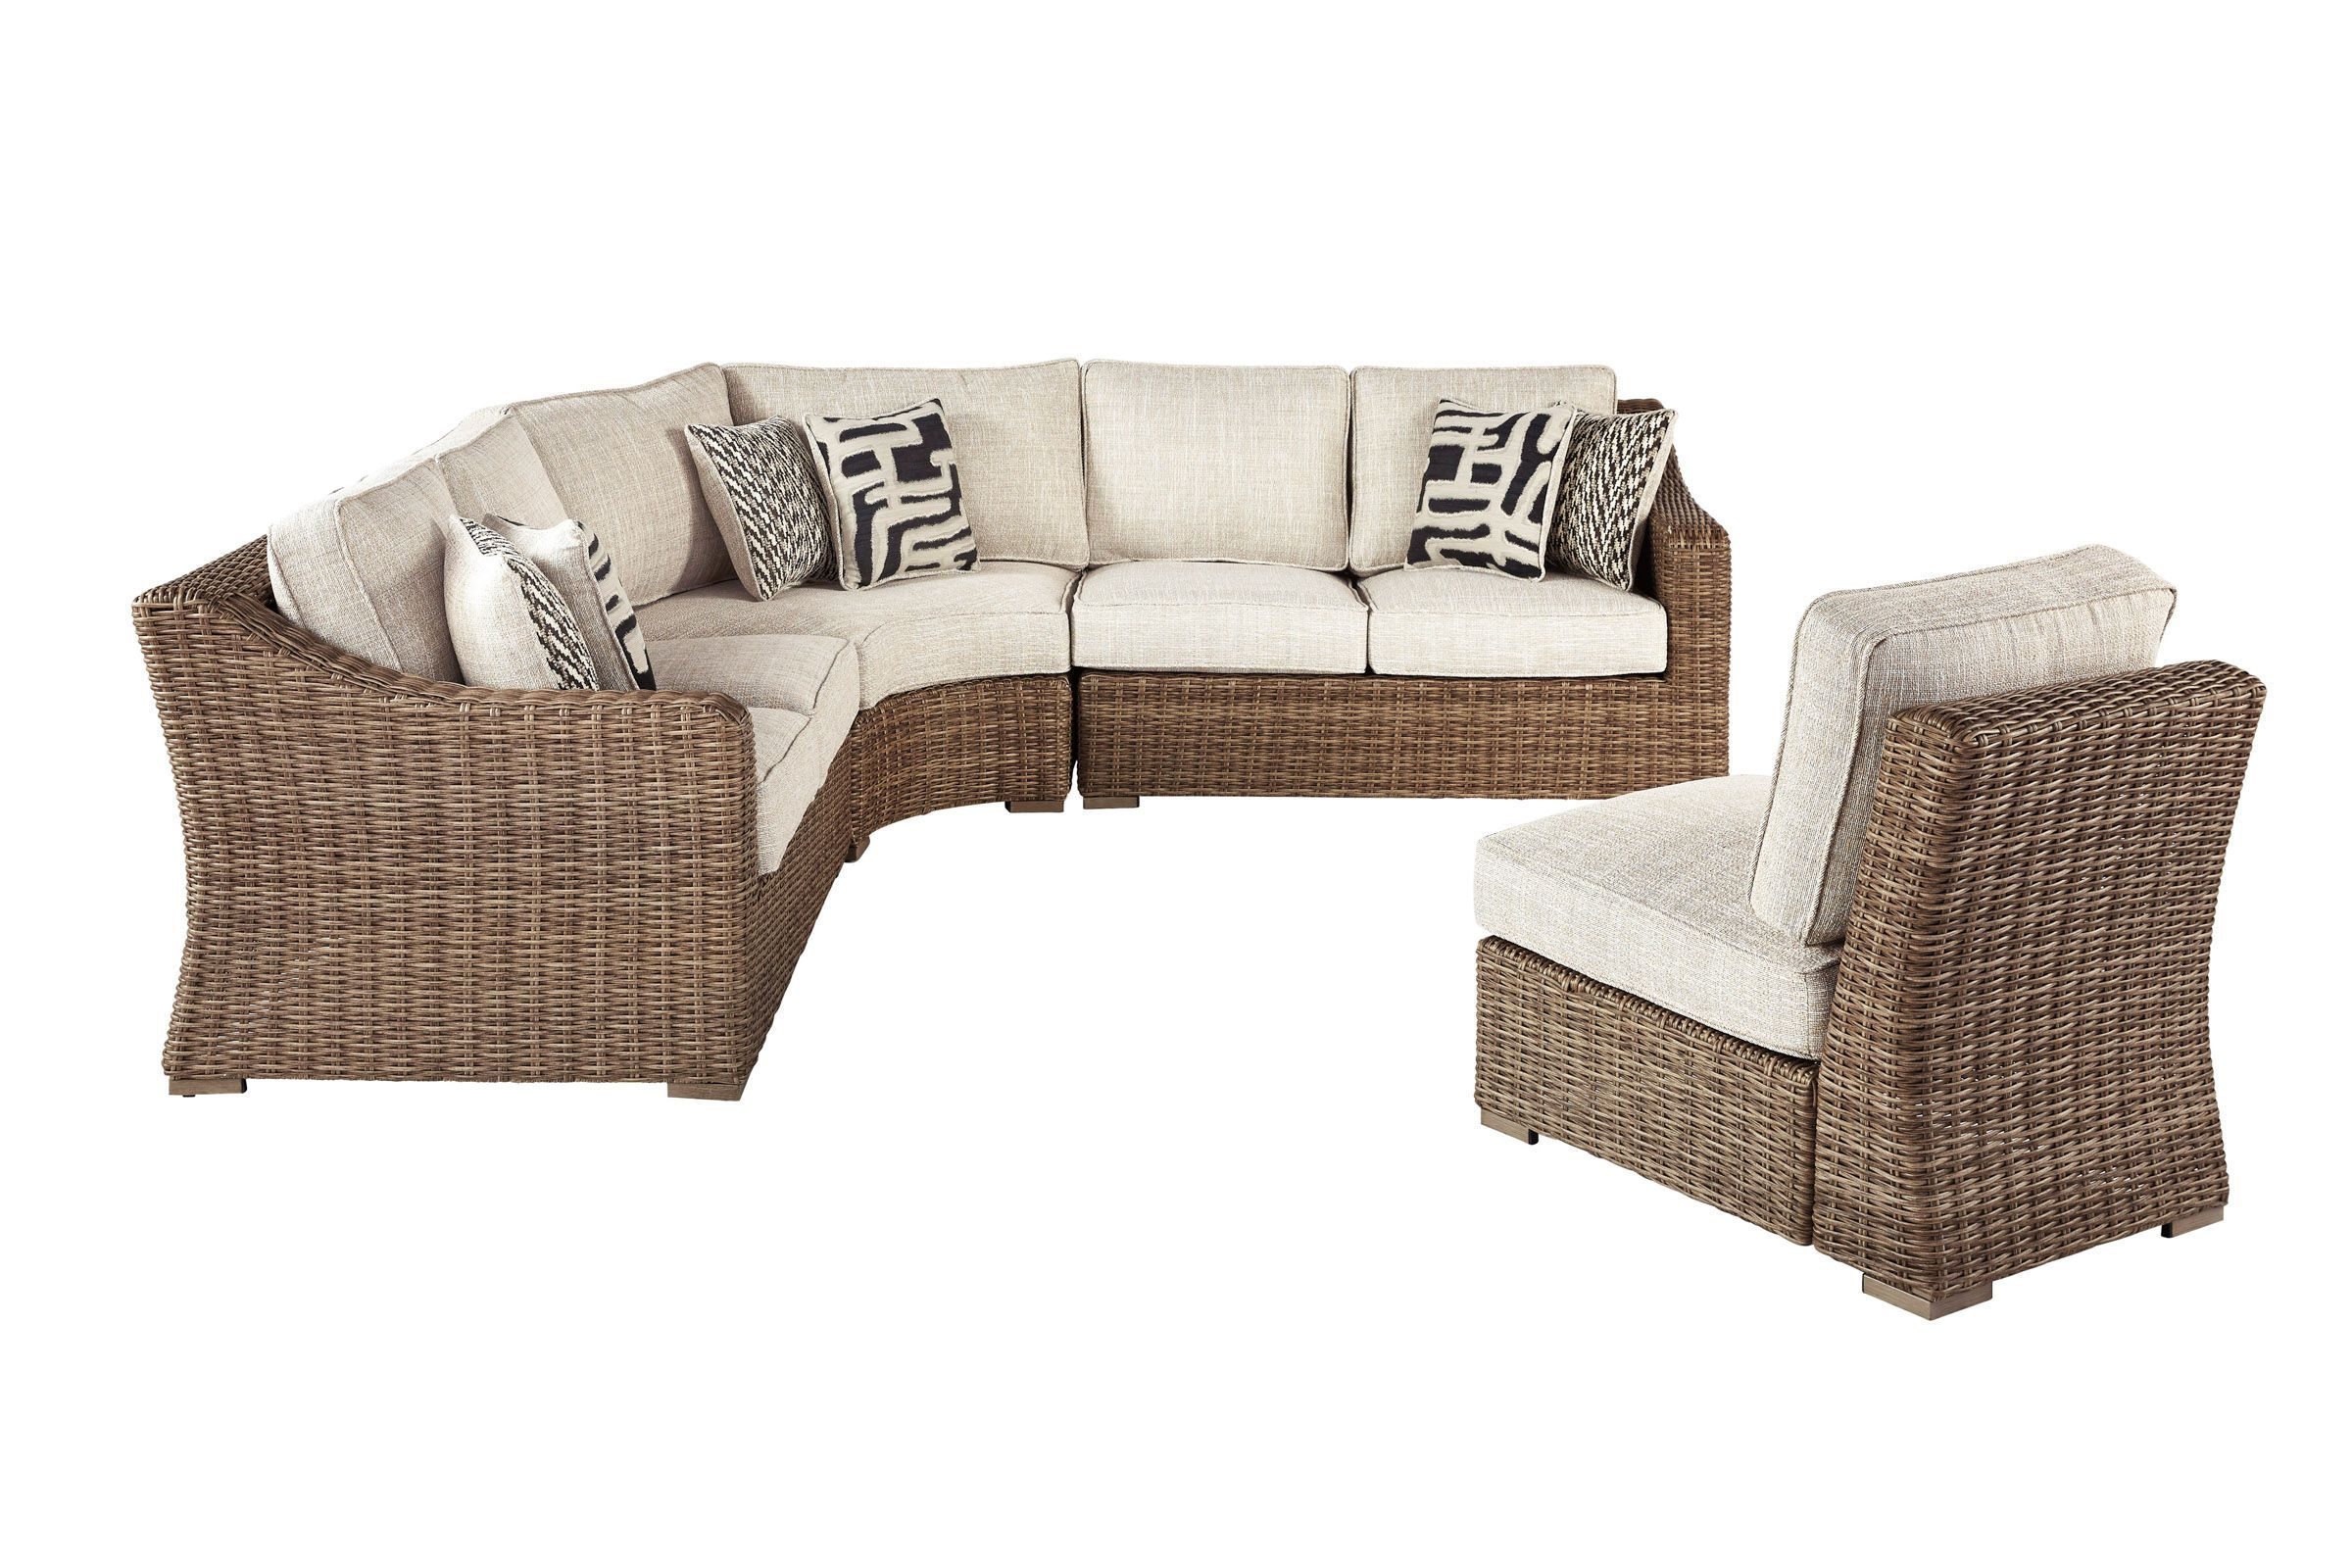 Beachcroft 4 Piece Outdoor Sectional By Ashley At Gardner White In 2021 Outdoor Seating Set White Patio Furniture Outdoor Furniture Sets